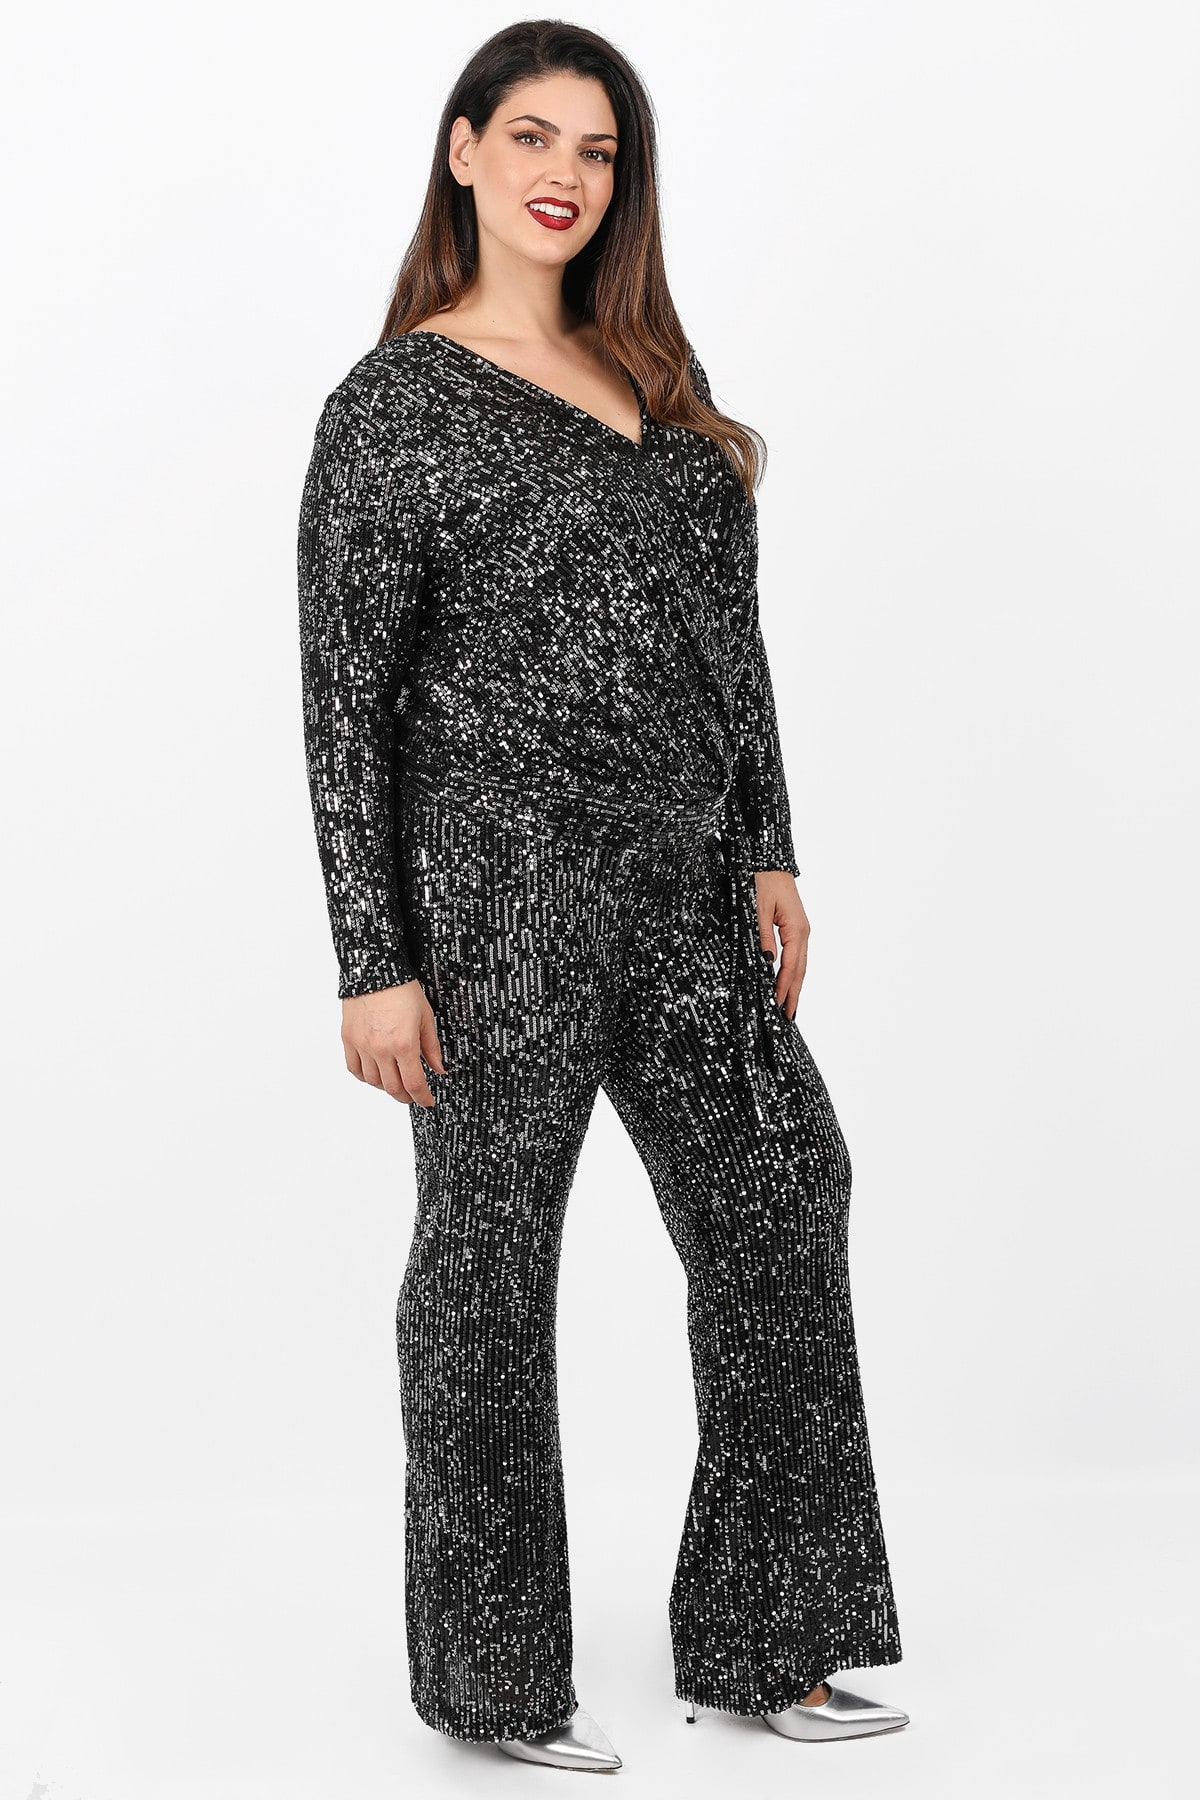 Wide leg trousers from sequins